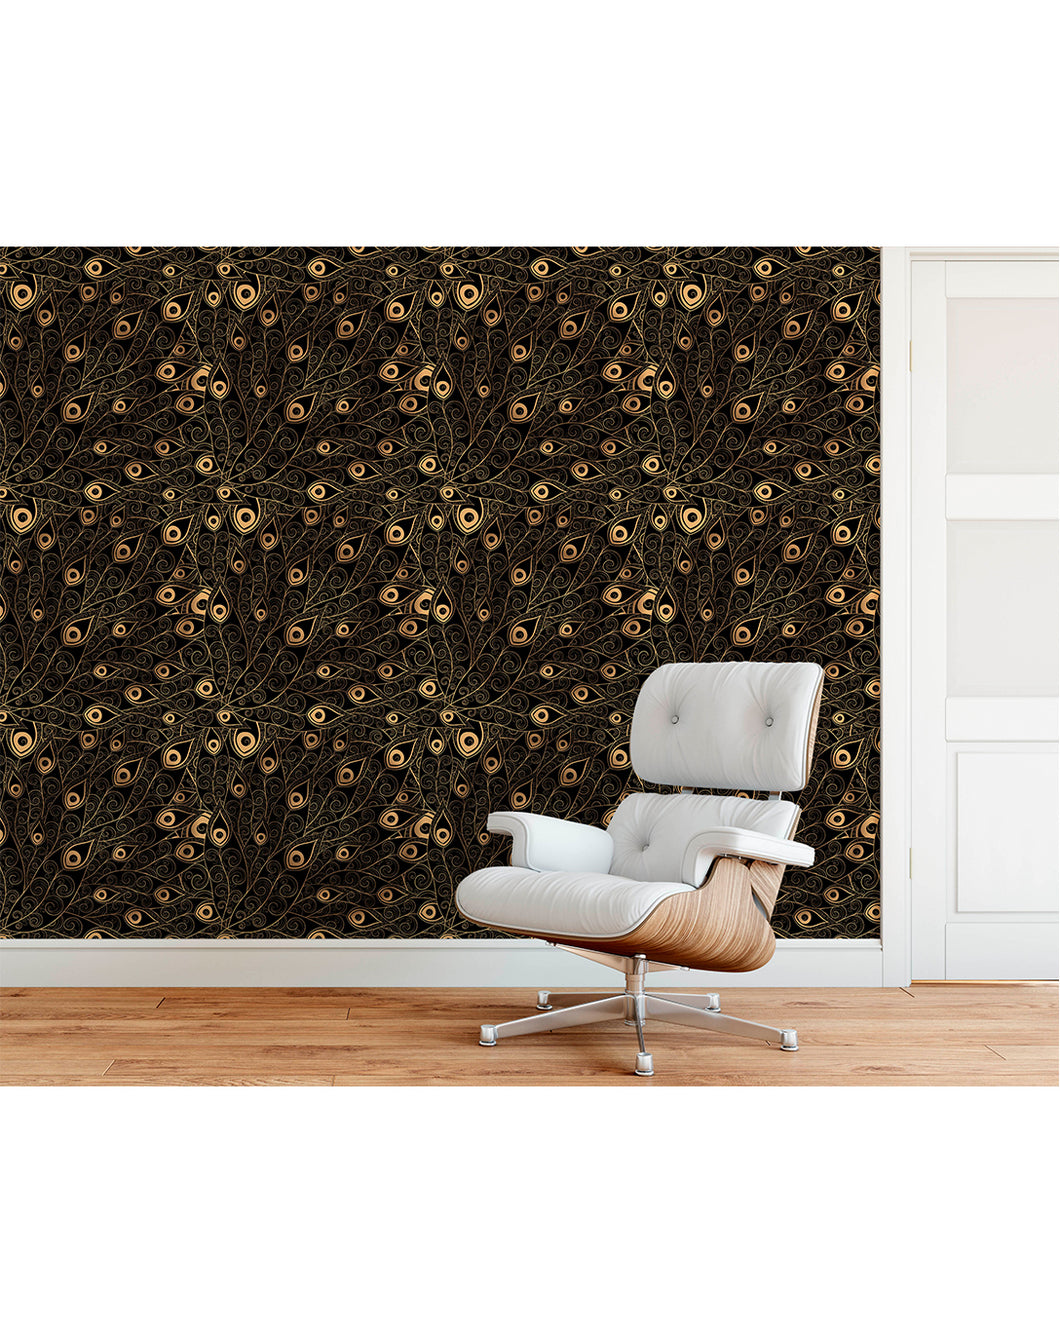 Costacover Self Adhesive Gold Black Peacock Feathers Wallpaper